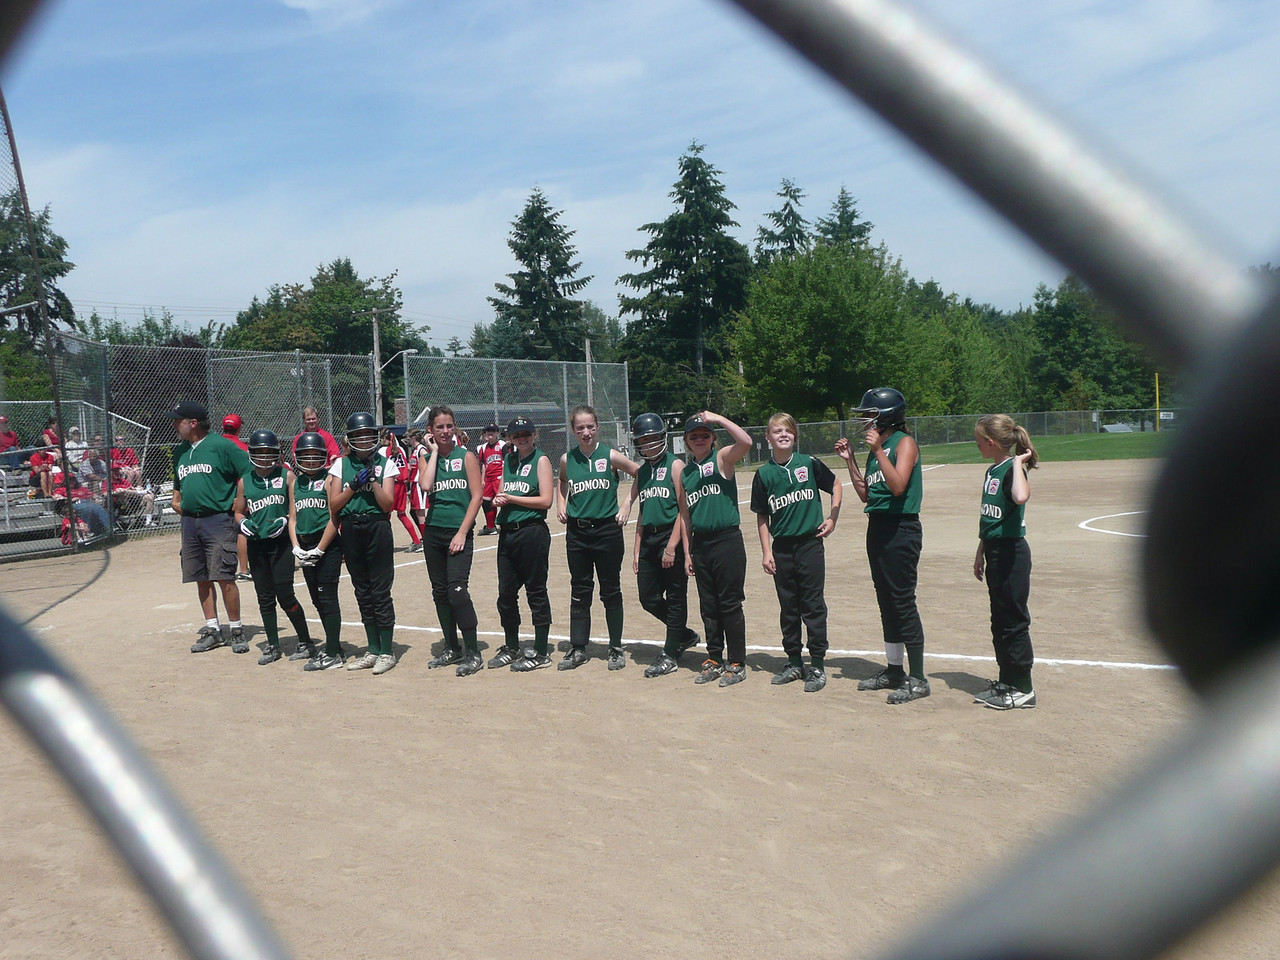 At the start of the first game, they announced each girls name and they would run out to the field.  Tons of fun!